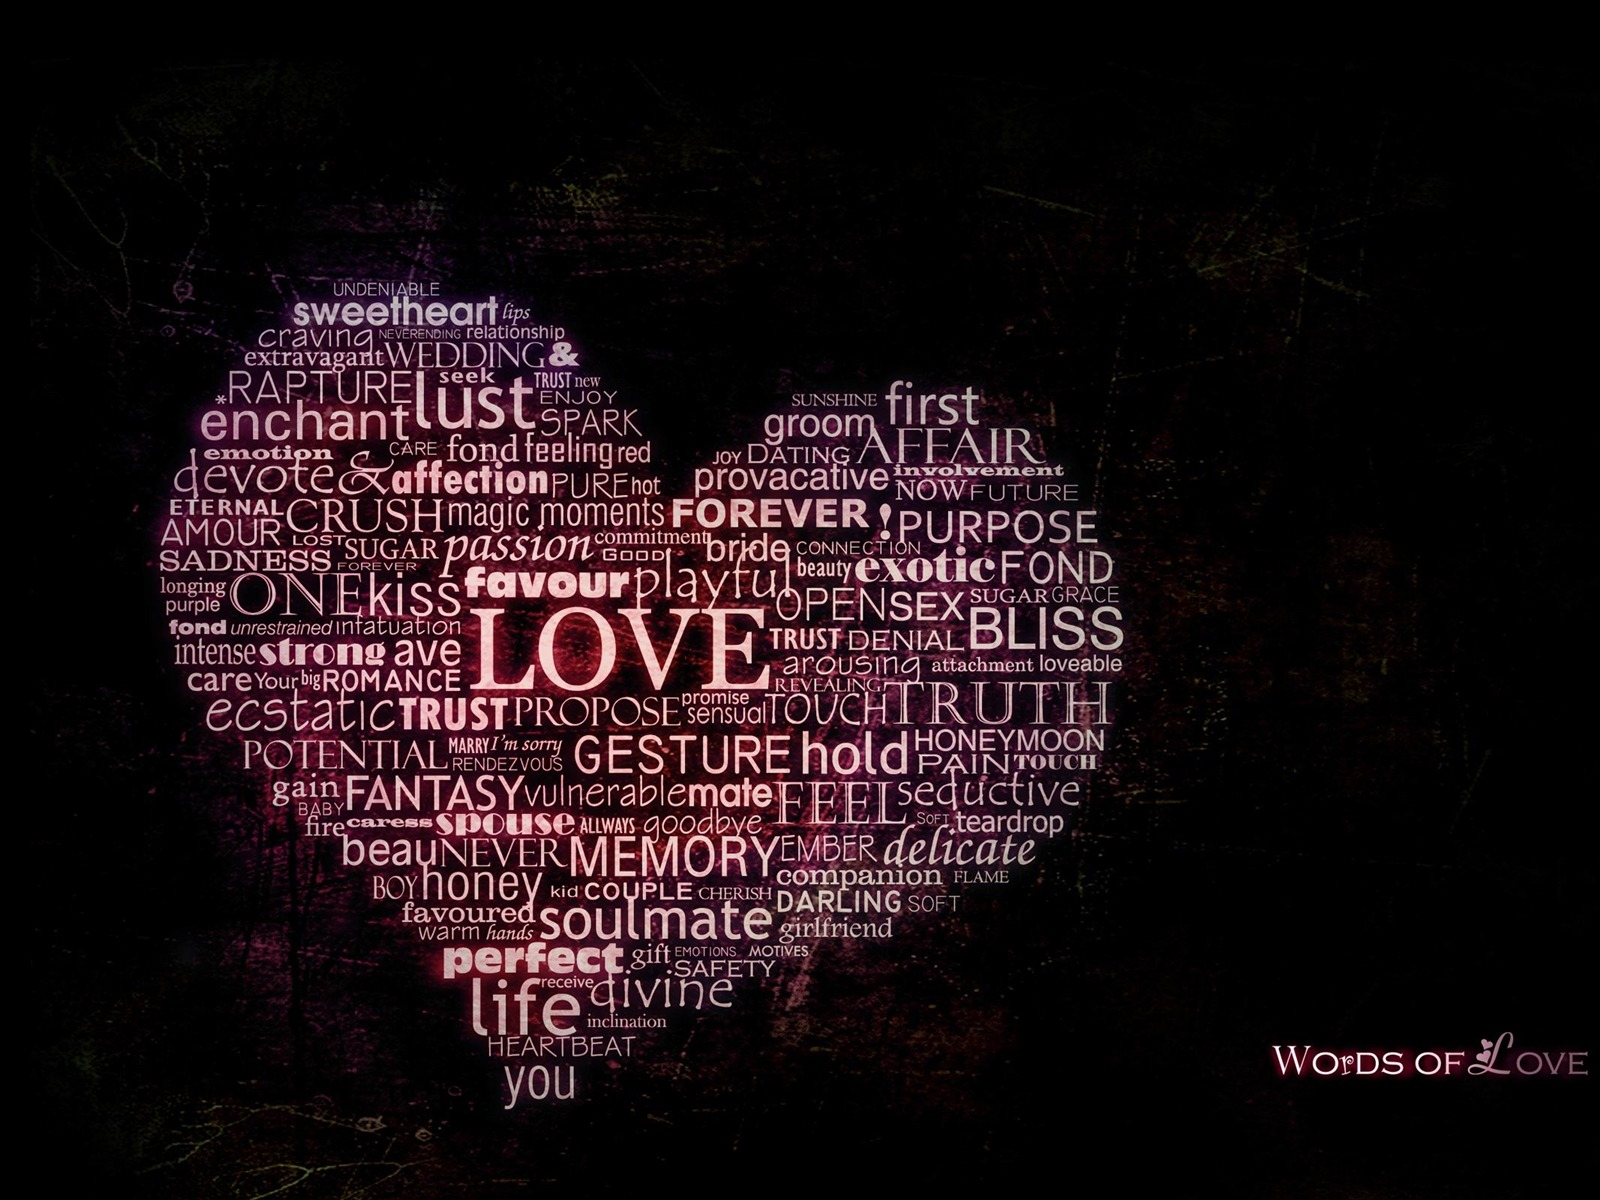 Love Theme Wallpaper Desktop : words of love-love theme Desktop Wallpapers-1600x1200 Download 10wallpaper.com